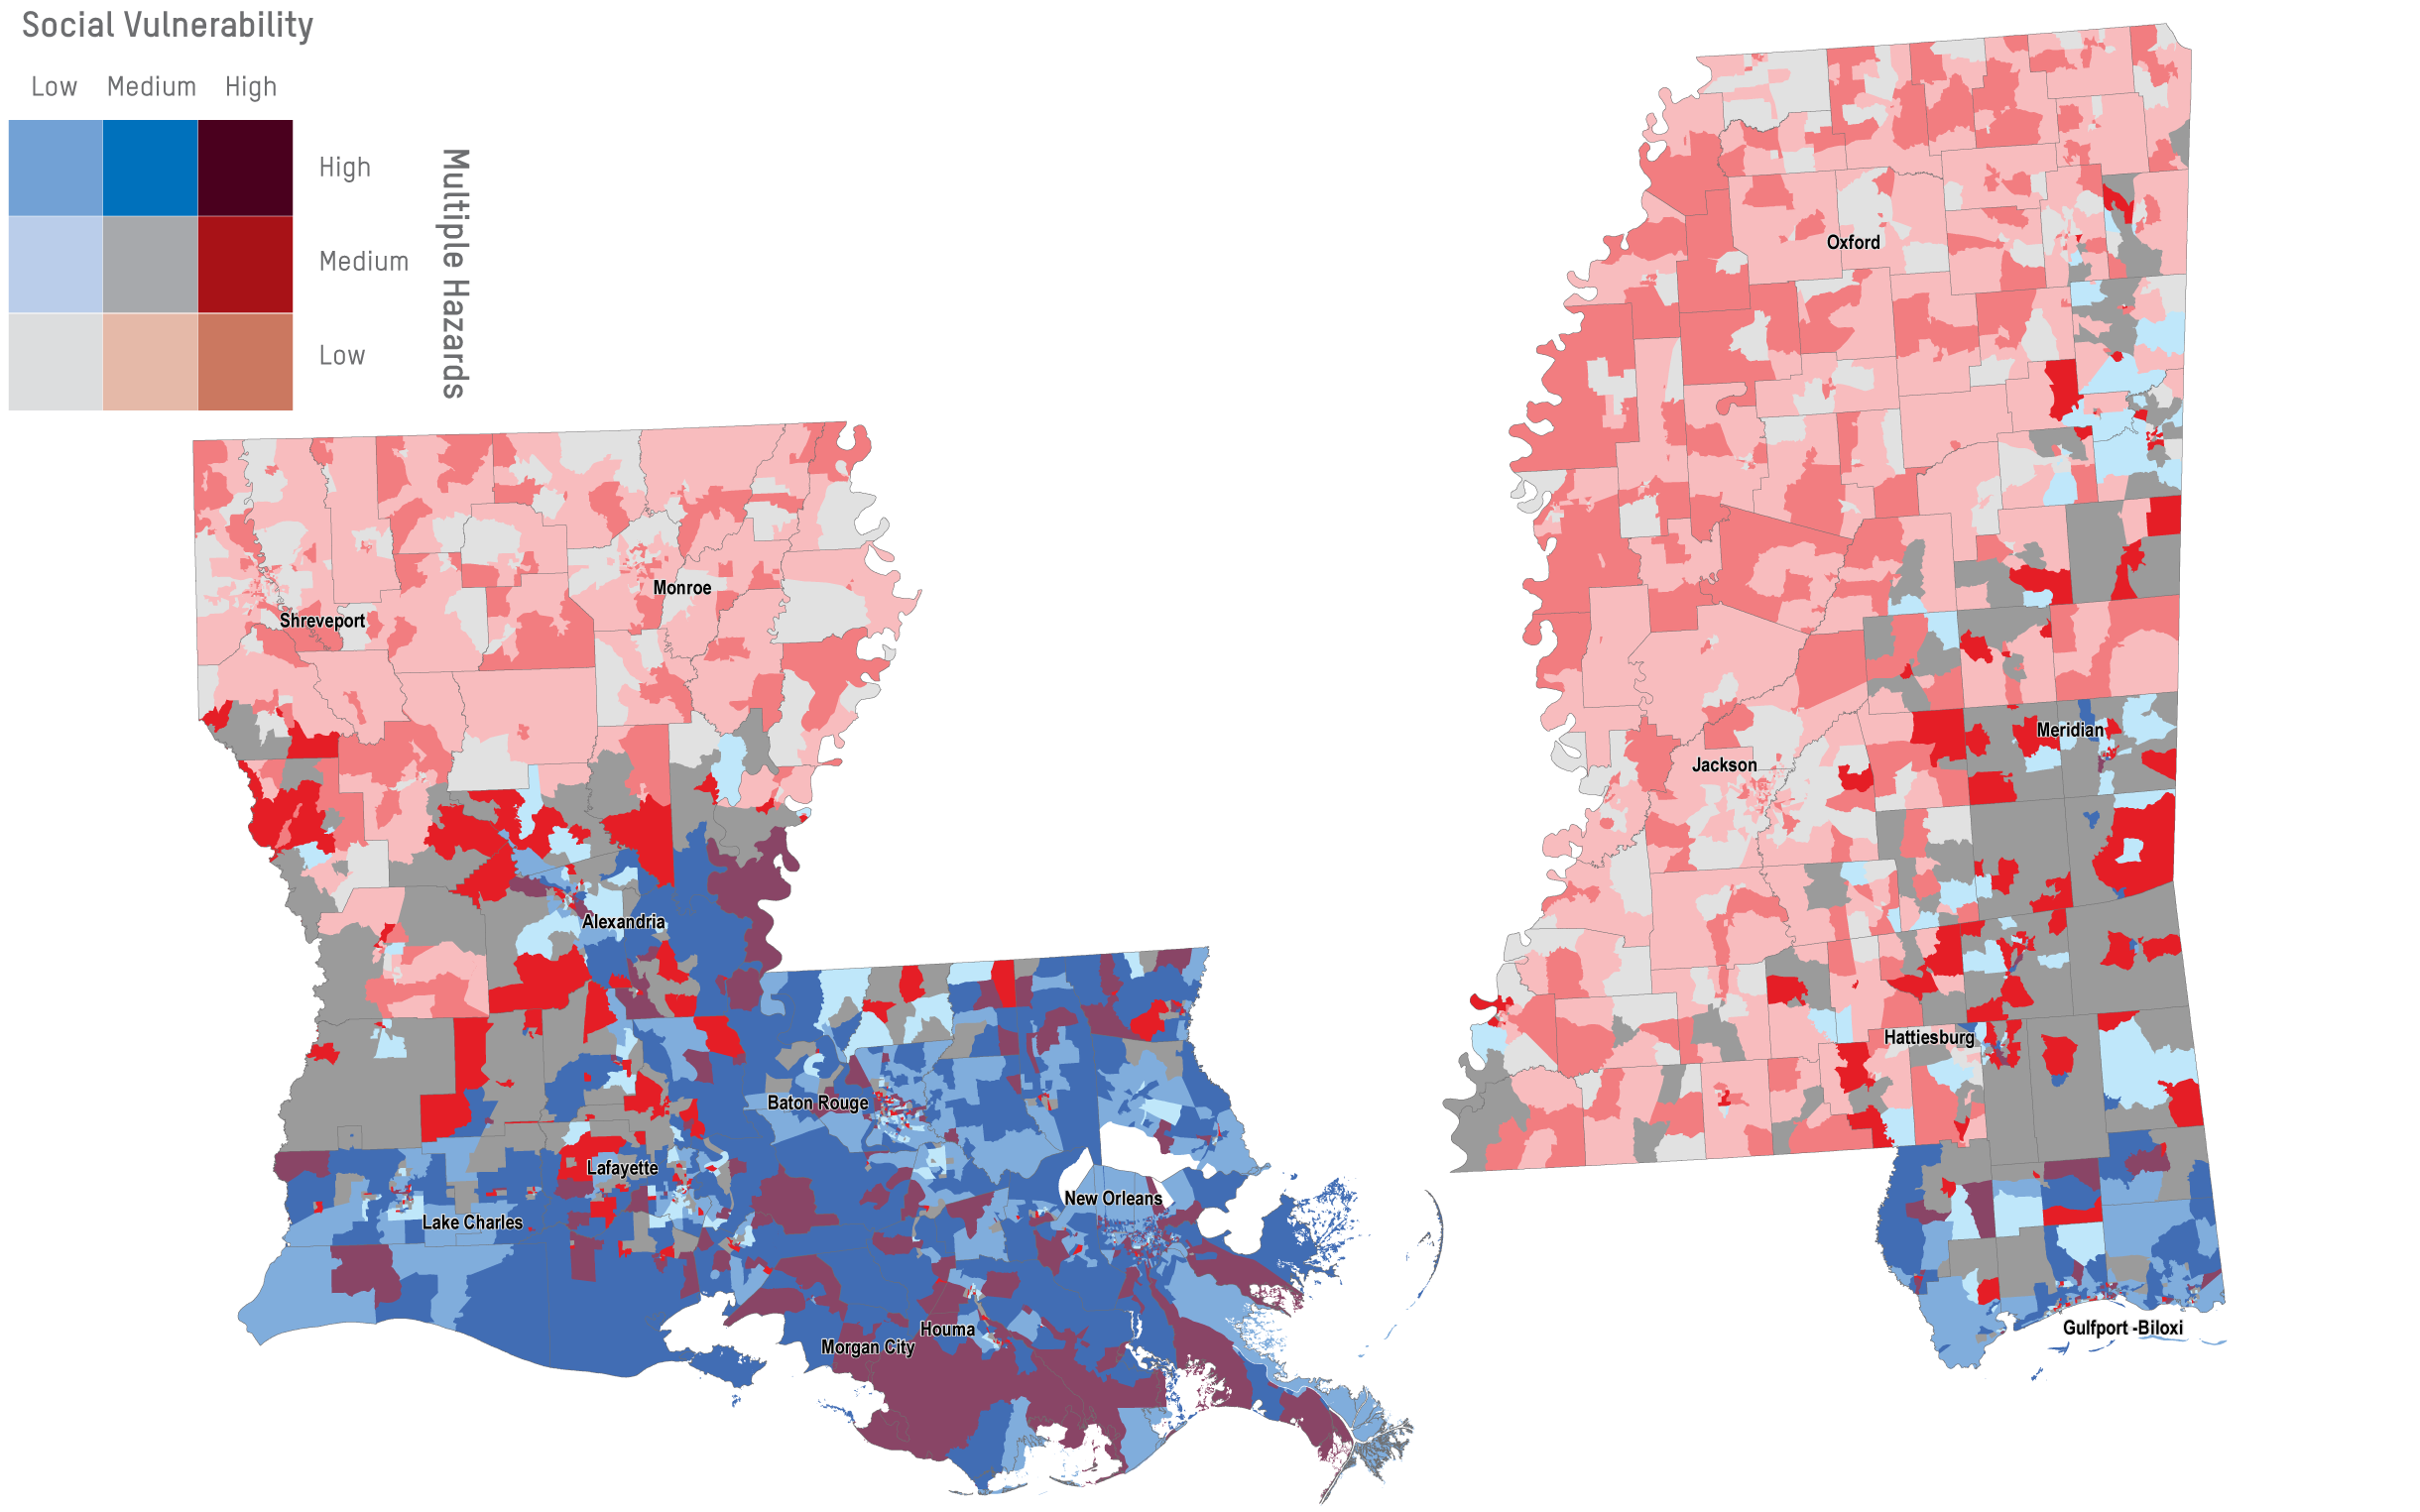 Mapping Social Vulnerability In Southeastern States And The Gulf - Louisiana sea level map